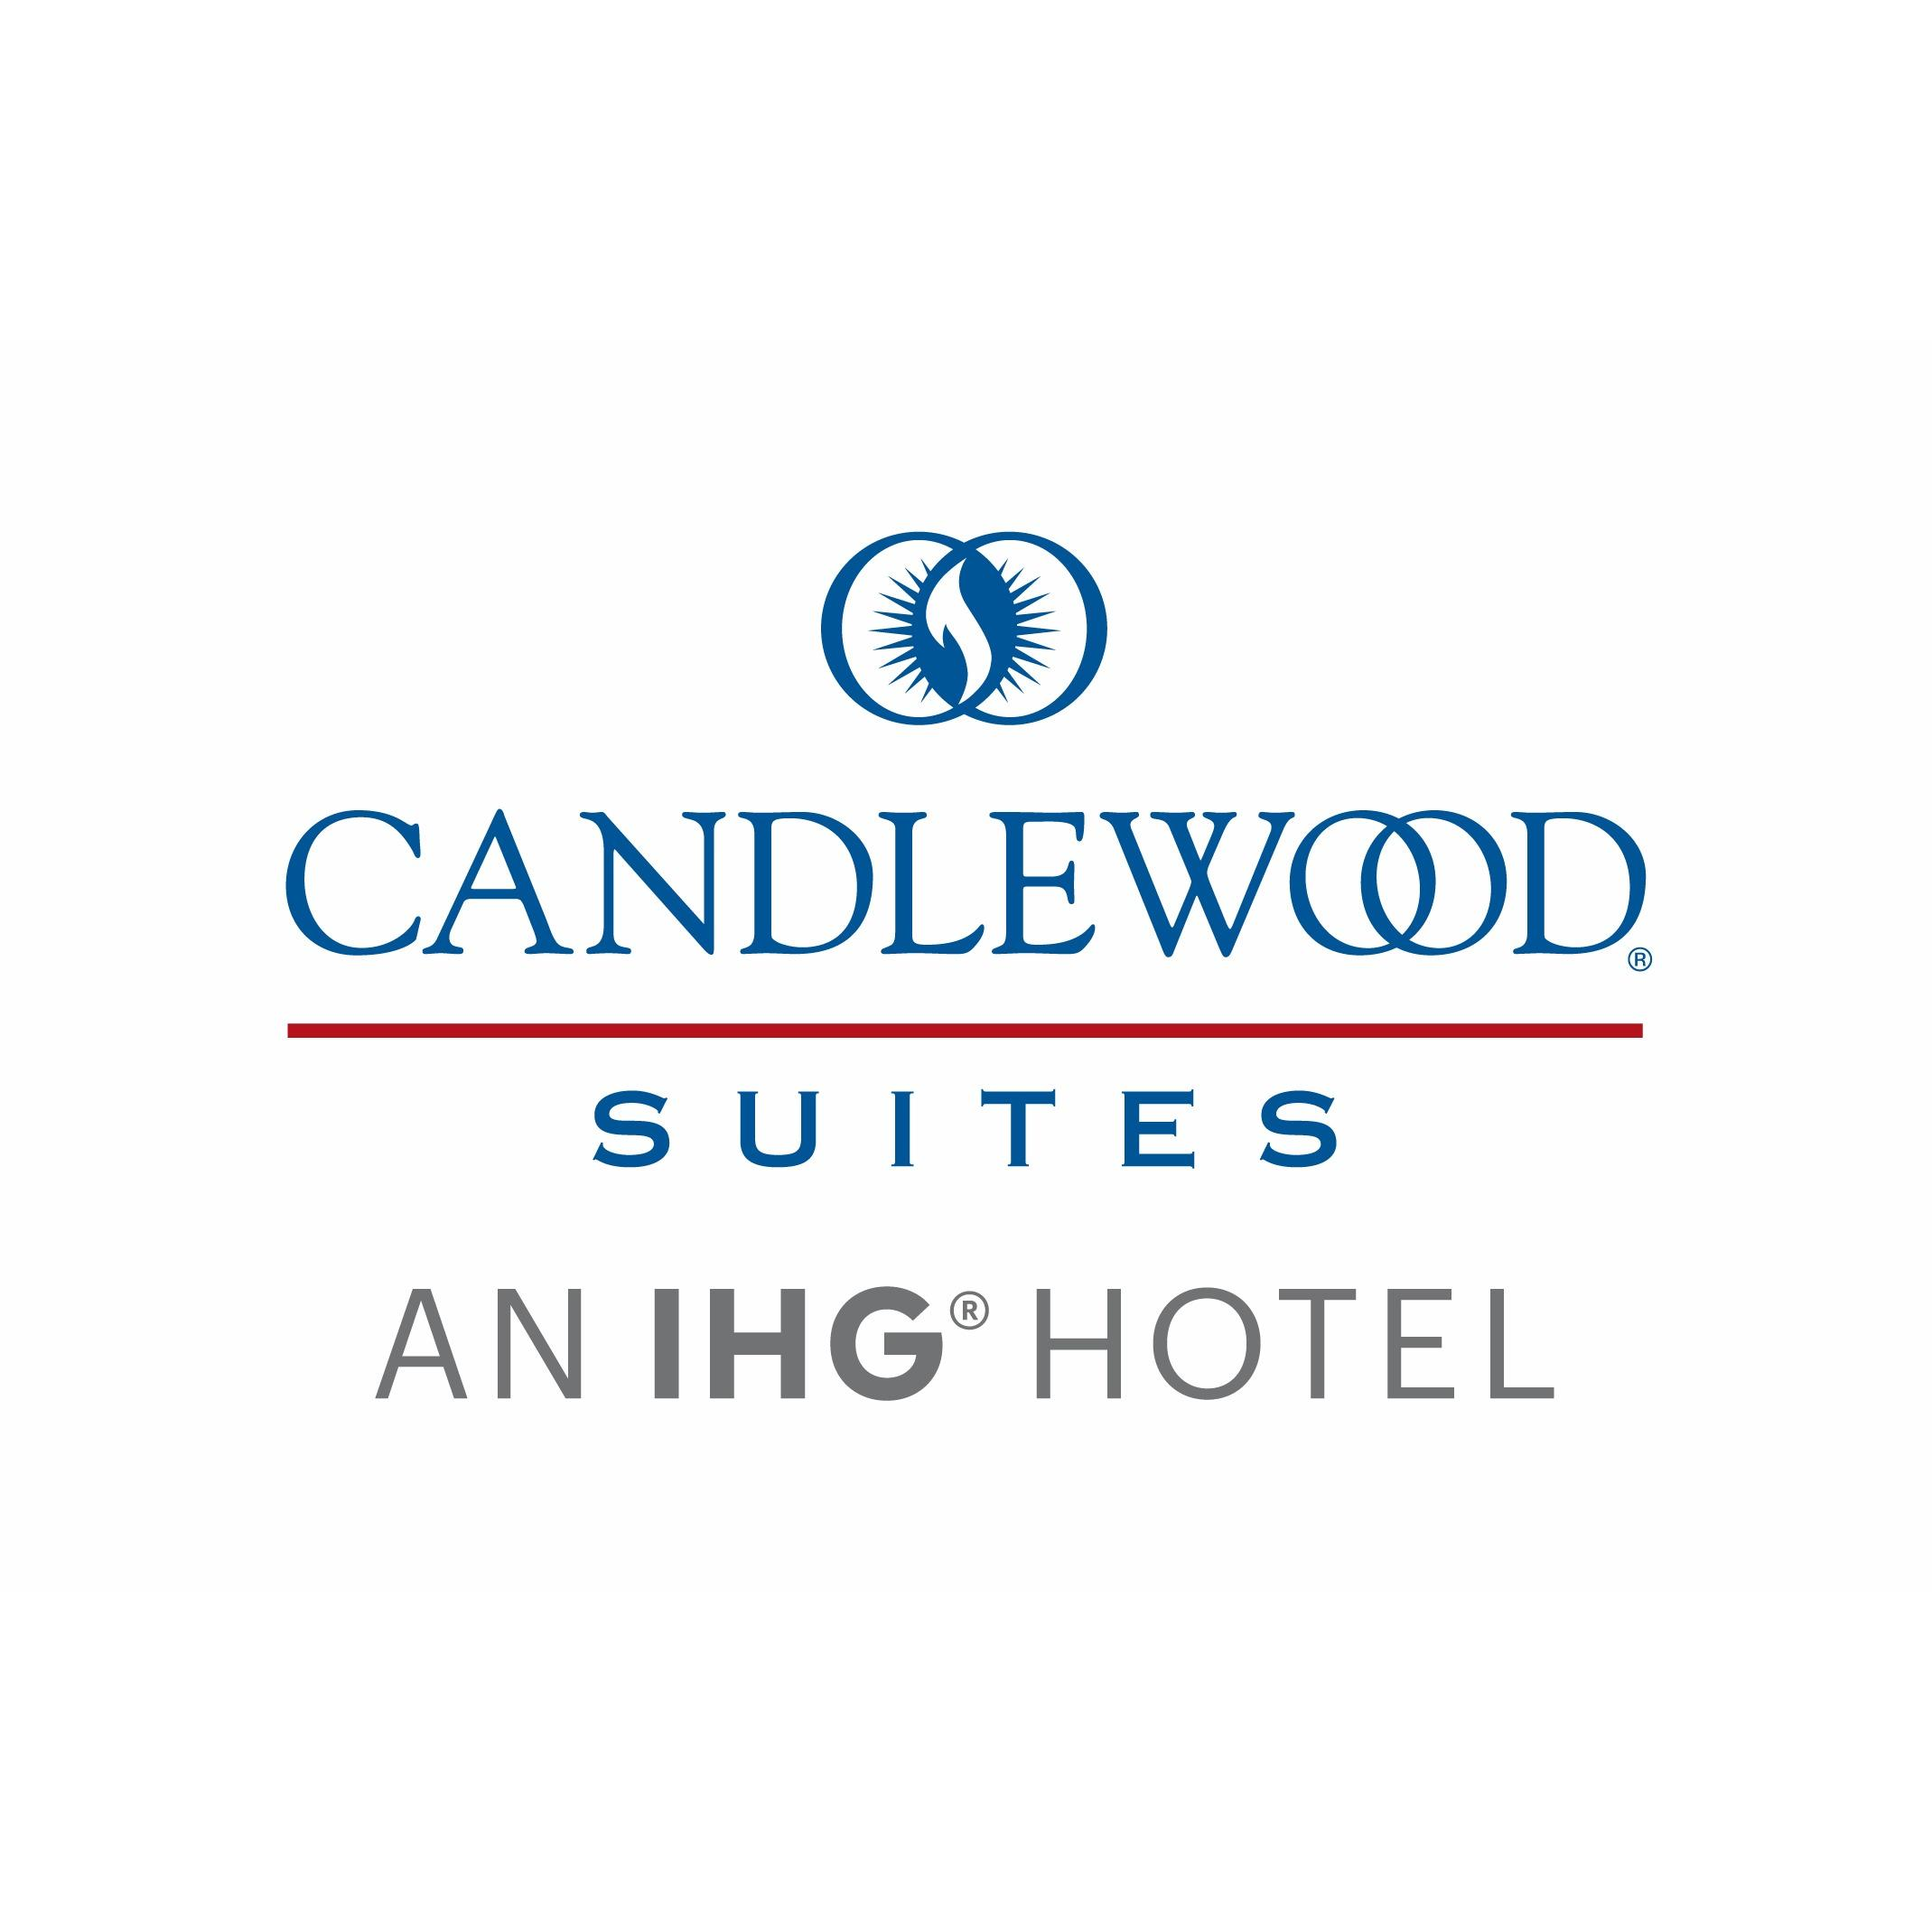 image of Candlewood Suites Dallas, Ft Worth/Fossil Creek